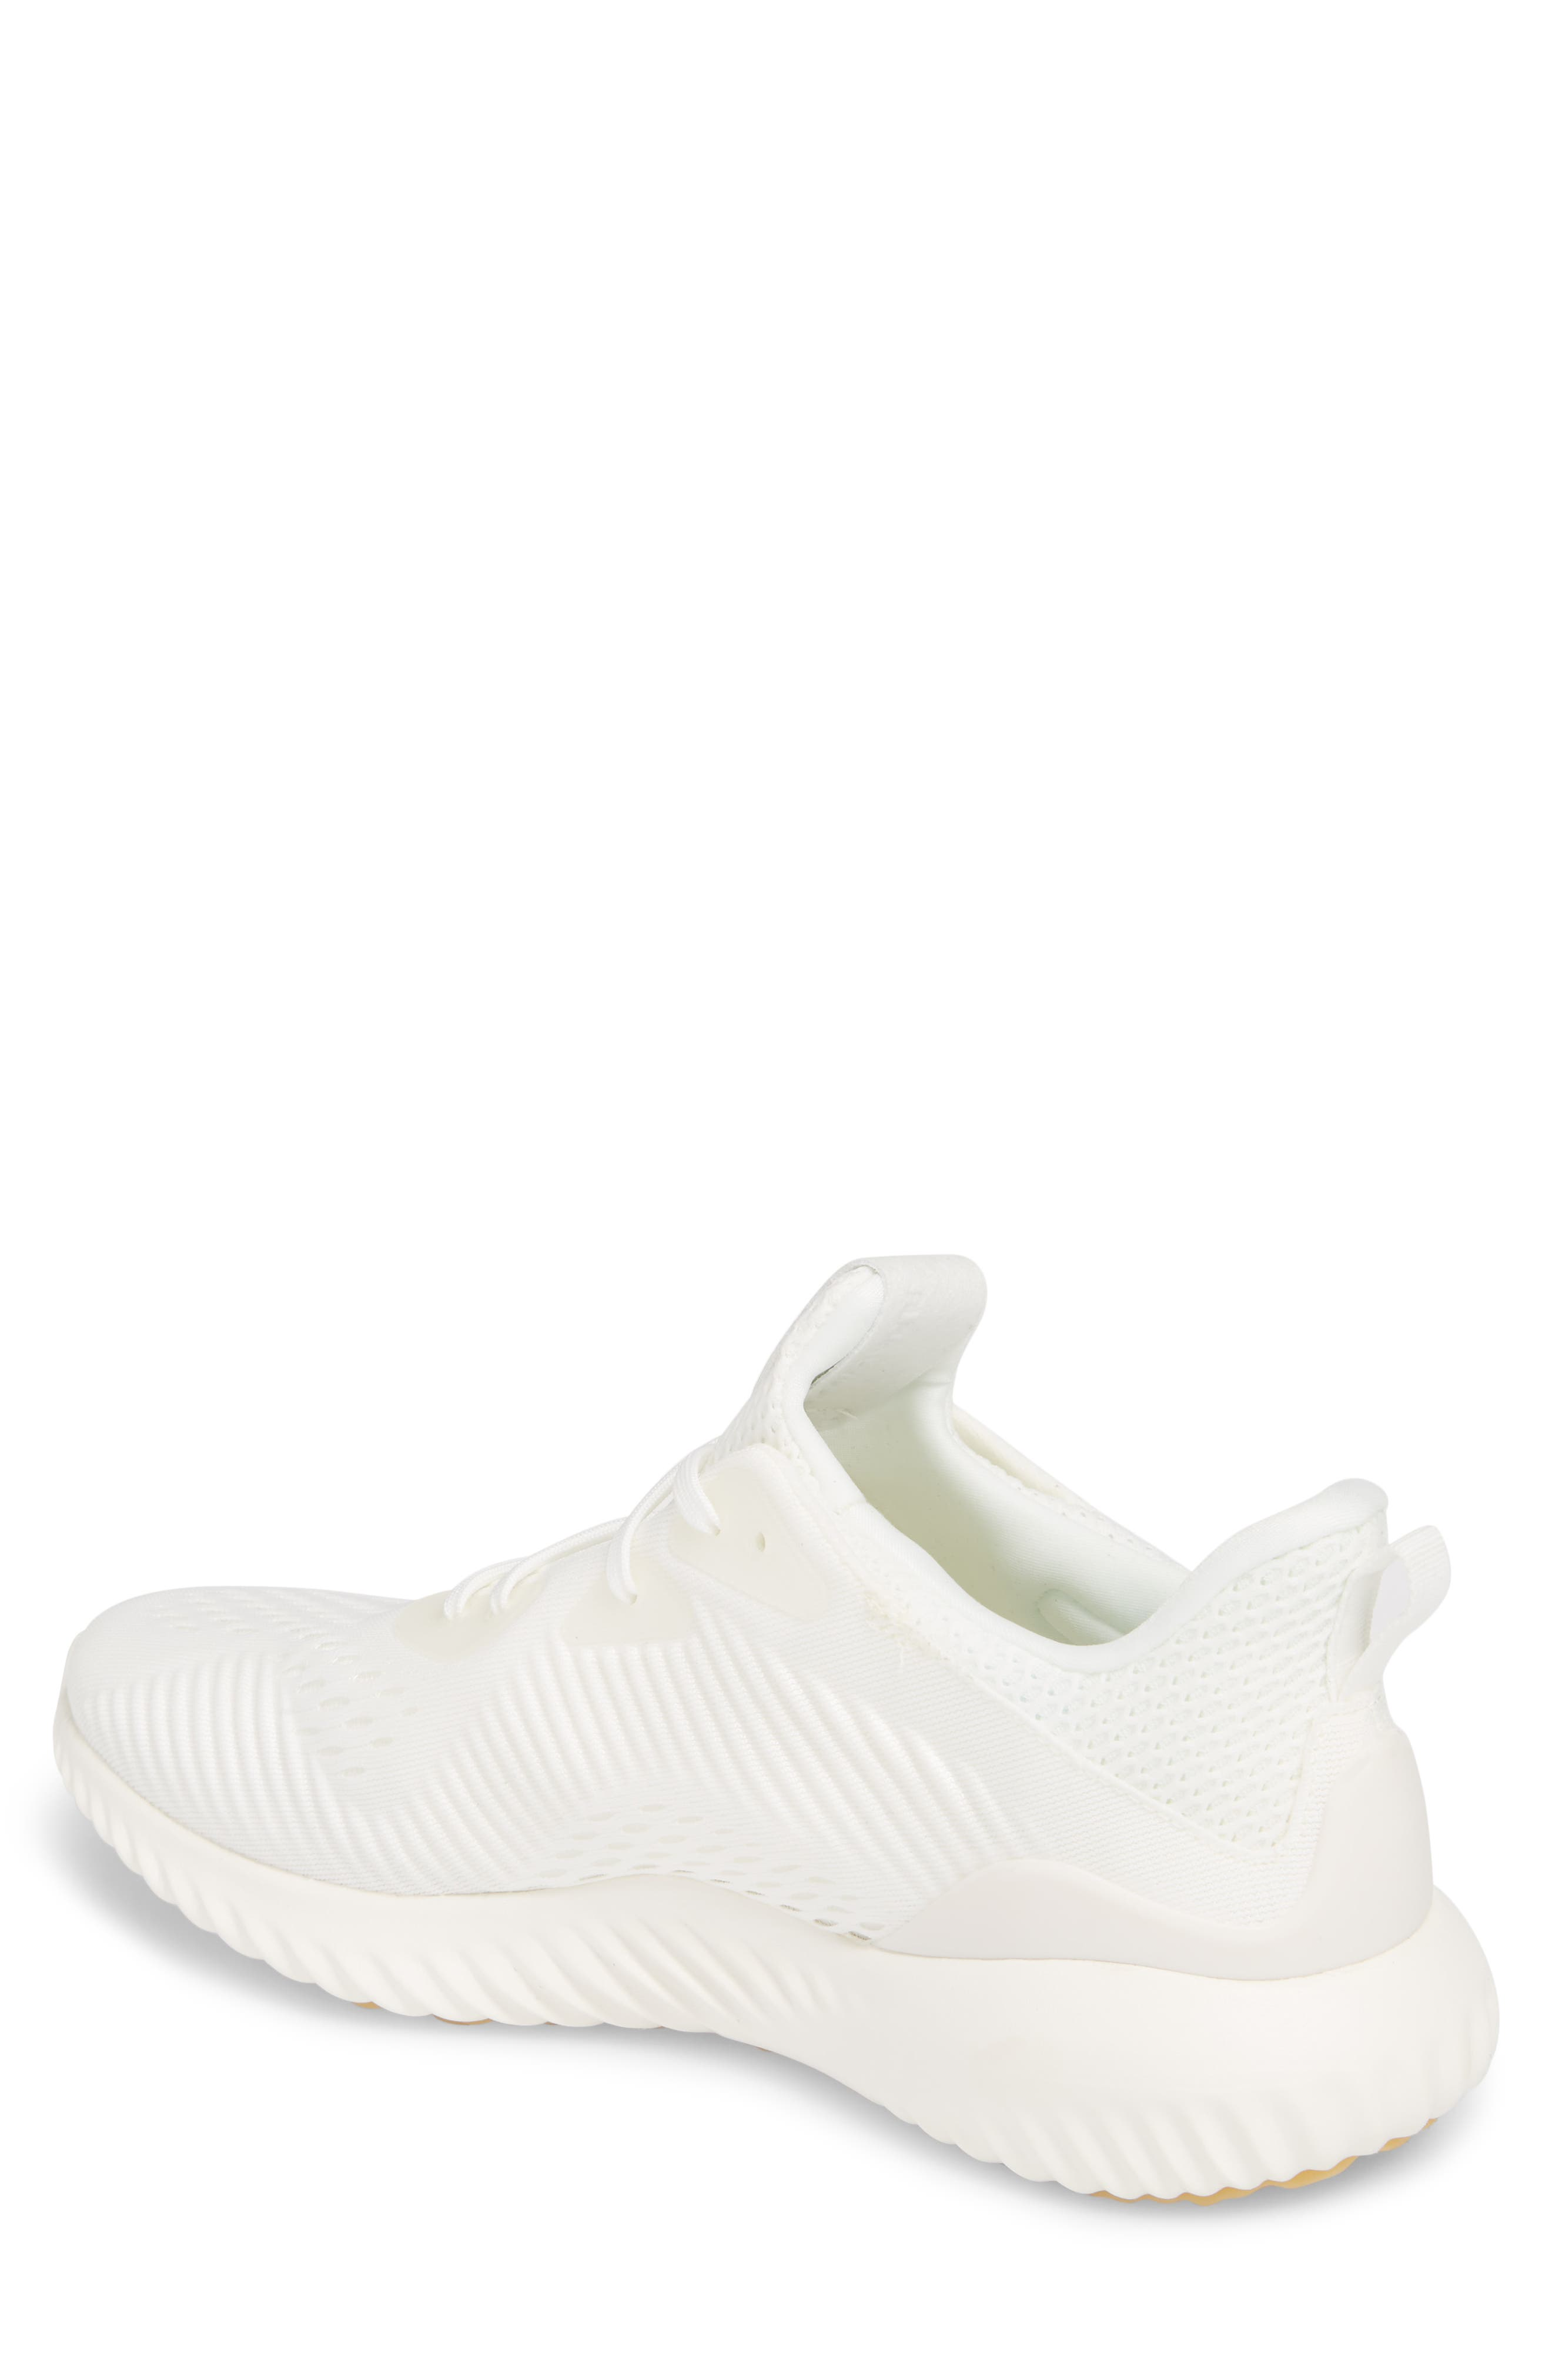 AlphaBounce EM Undye Running Shoe,                             Alternate thumbnail 2, color,                             Non Dyed/ Grey